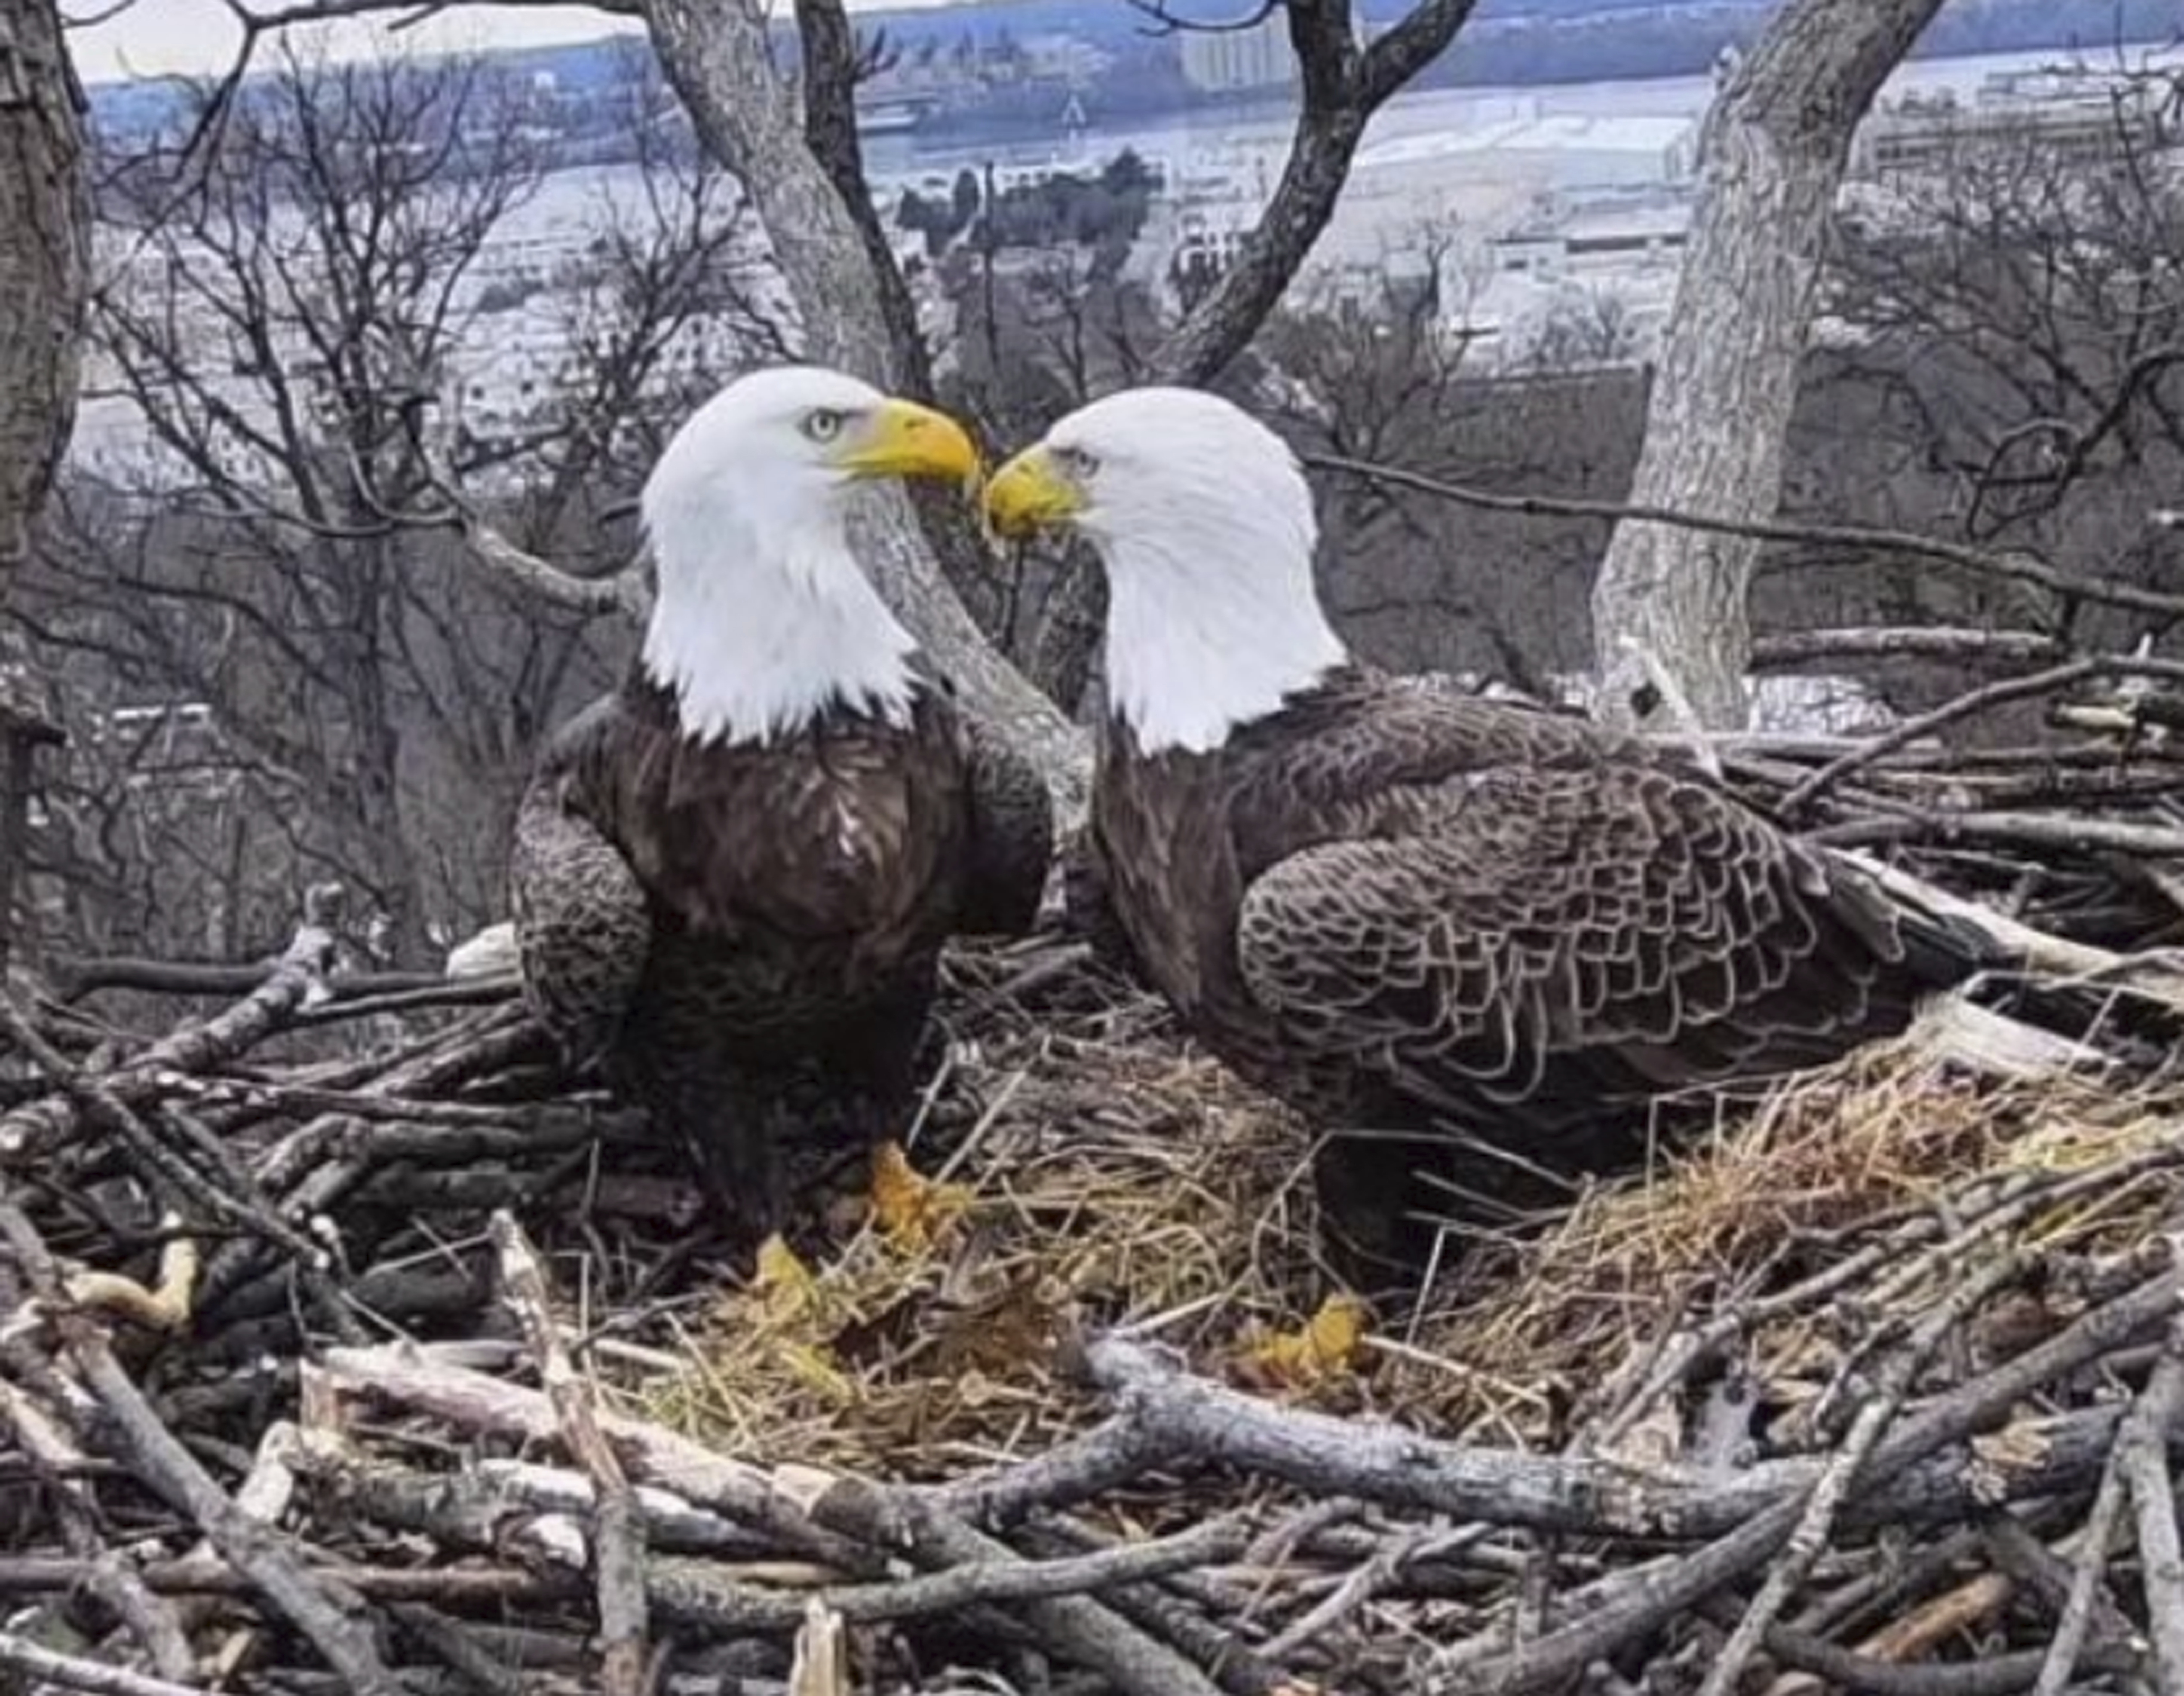 This March 4, 2019, image from video provided by Earth Conservation Corps Eagle Cam, shows Bald Eagles Liberty and Justice on their nest in Washington. It's a tale containing seemingly everything you'd need for a proper soap opera: star-crossed lovers, a stable relationship threatened by younger suitors, pregnancy and loss, and a hungry raccoon. Washingtonians, along with a global community of eagle-watchers, have been transfixed this winter by the tale of Liberty and Justice, a pair of bald eagles who have nested and raised eaglets together for 14 years on the grounds of Washington's police academy (Earth Conservation Corps via AP)